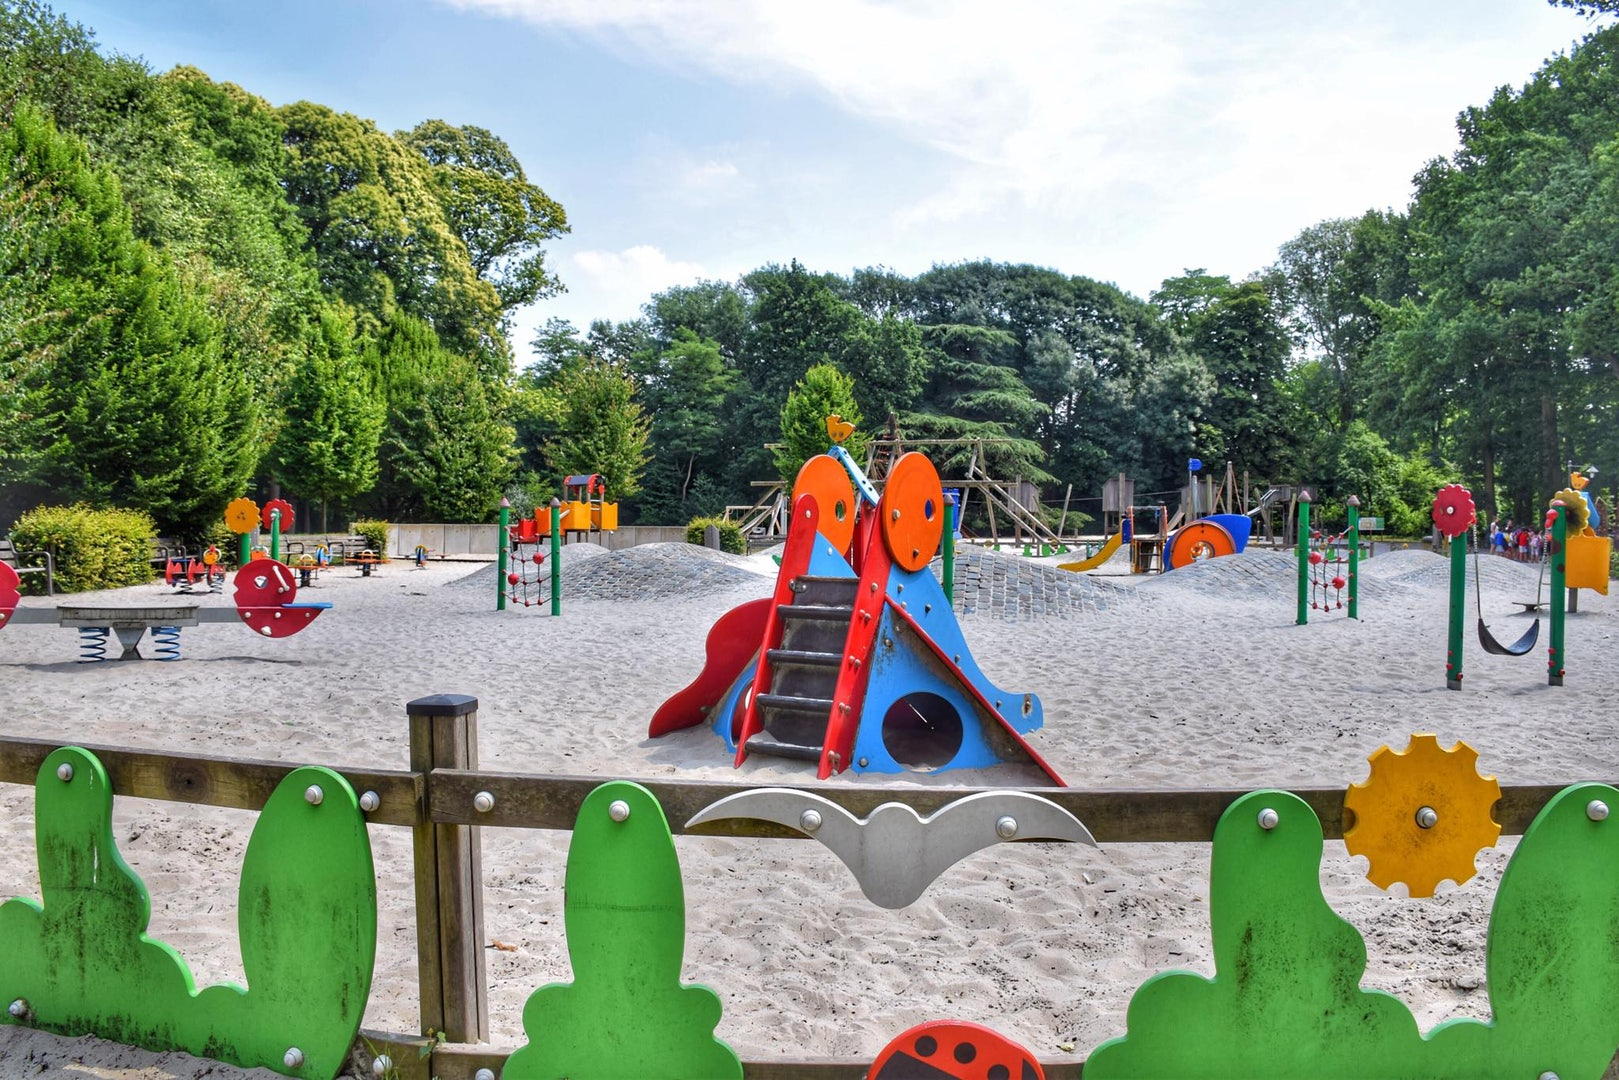 Kids' Playground in Nachtegalenpark